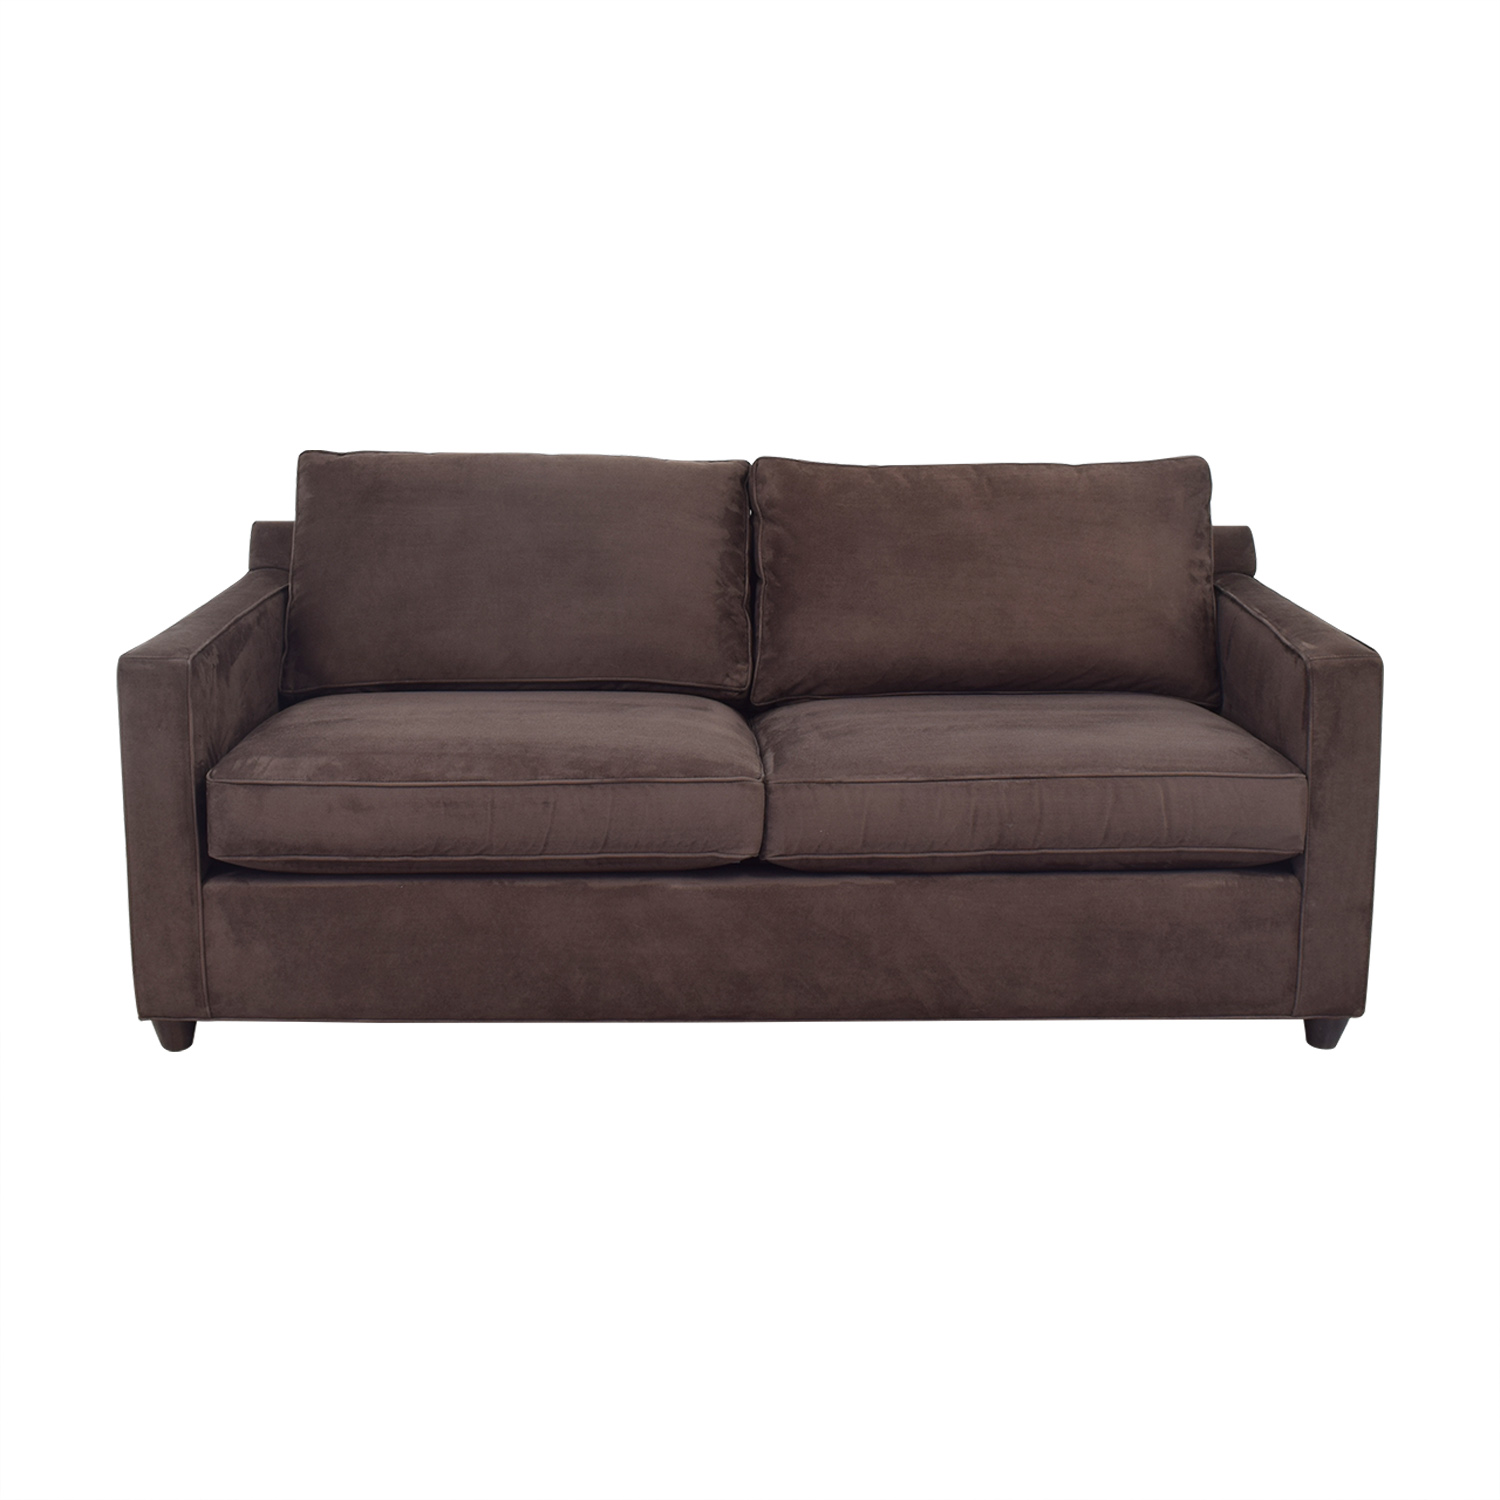 Crate & Barrel Crate & Barrel Two Cushion Sofa ma